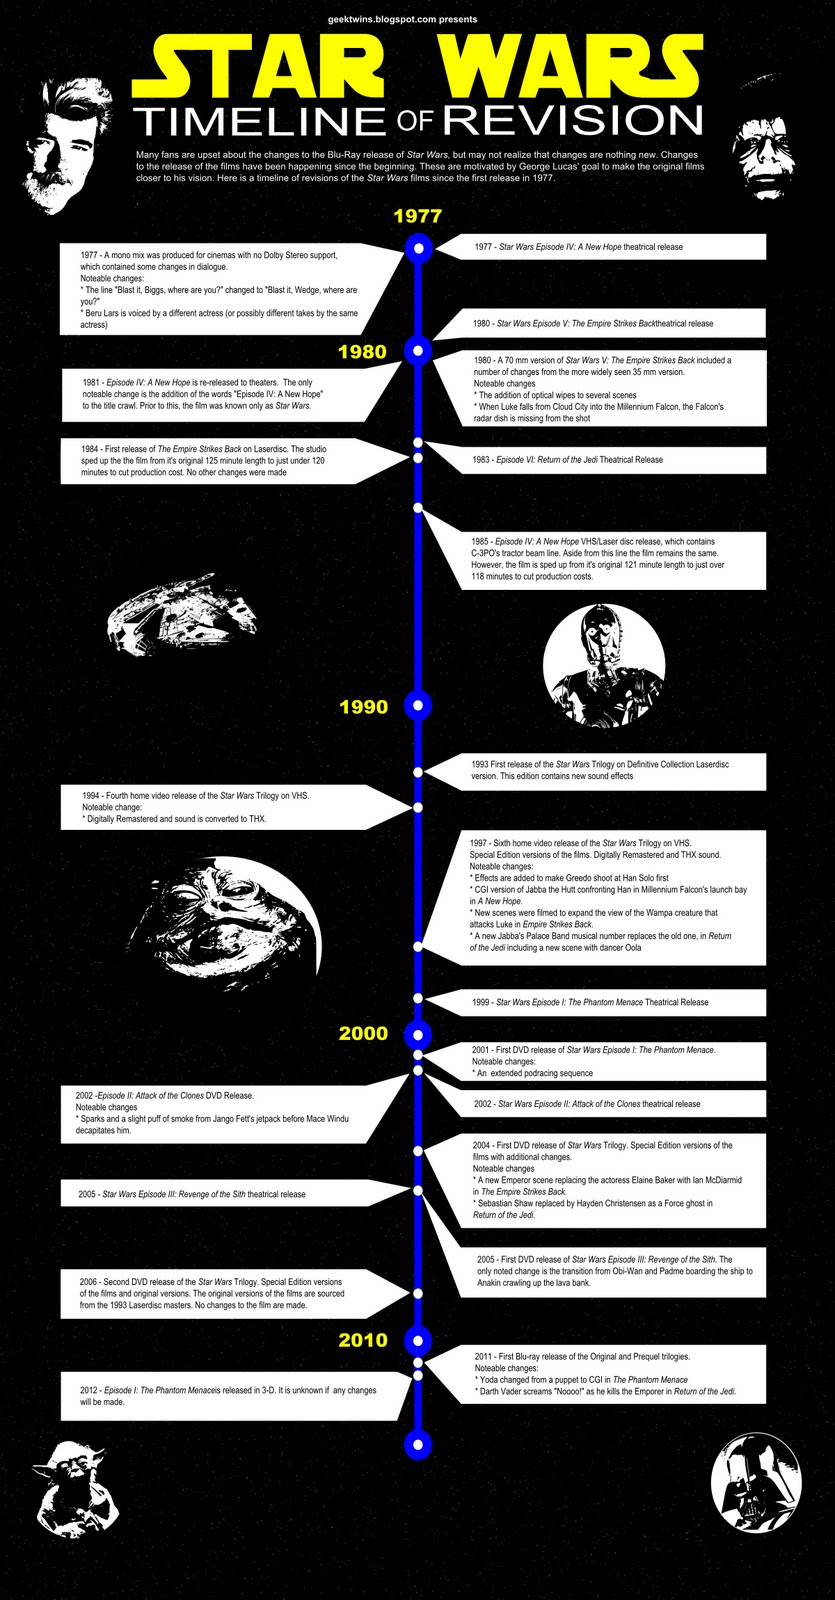 Star Wars Timeline Of Revisions